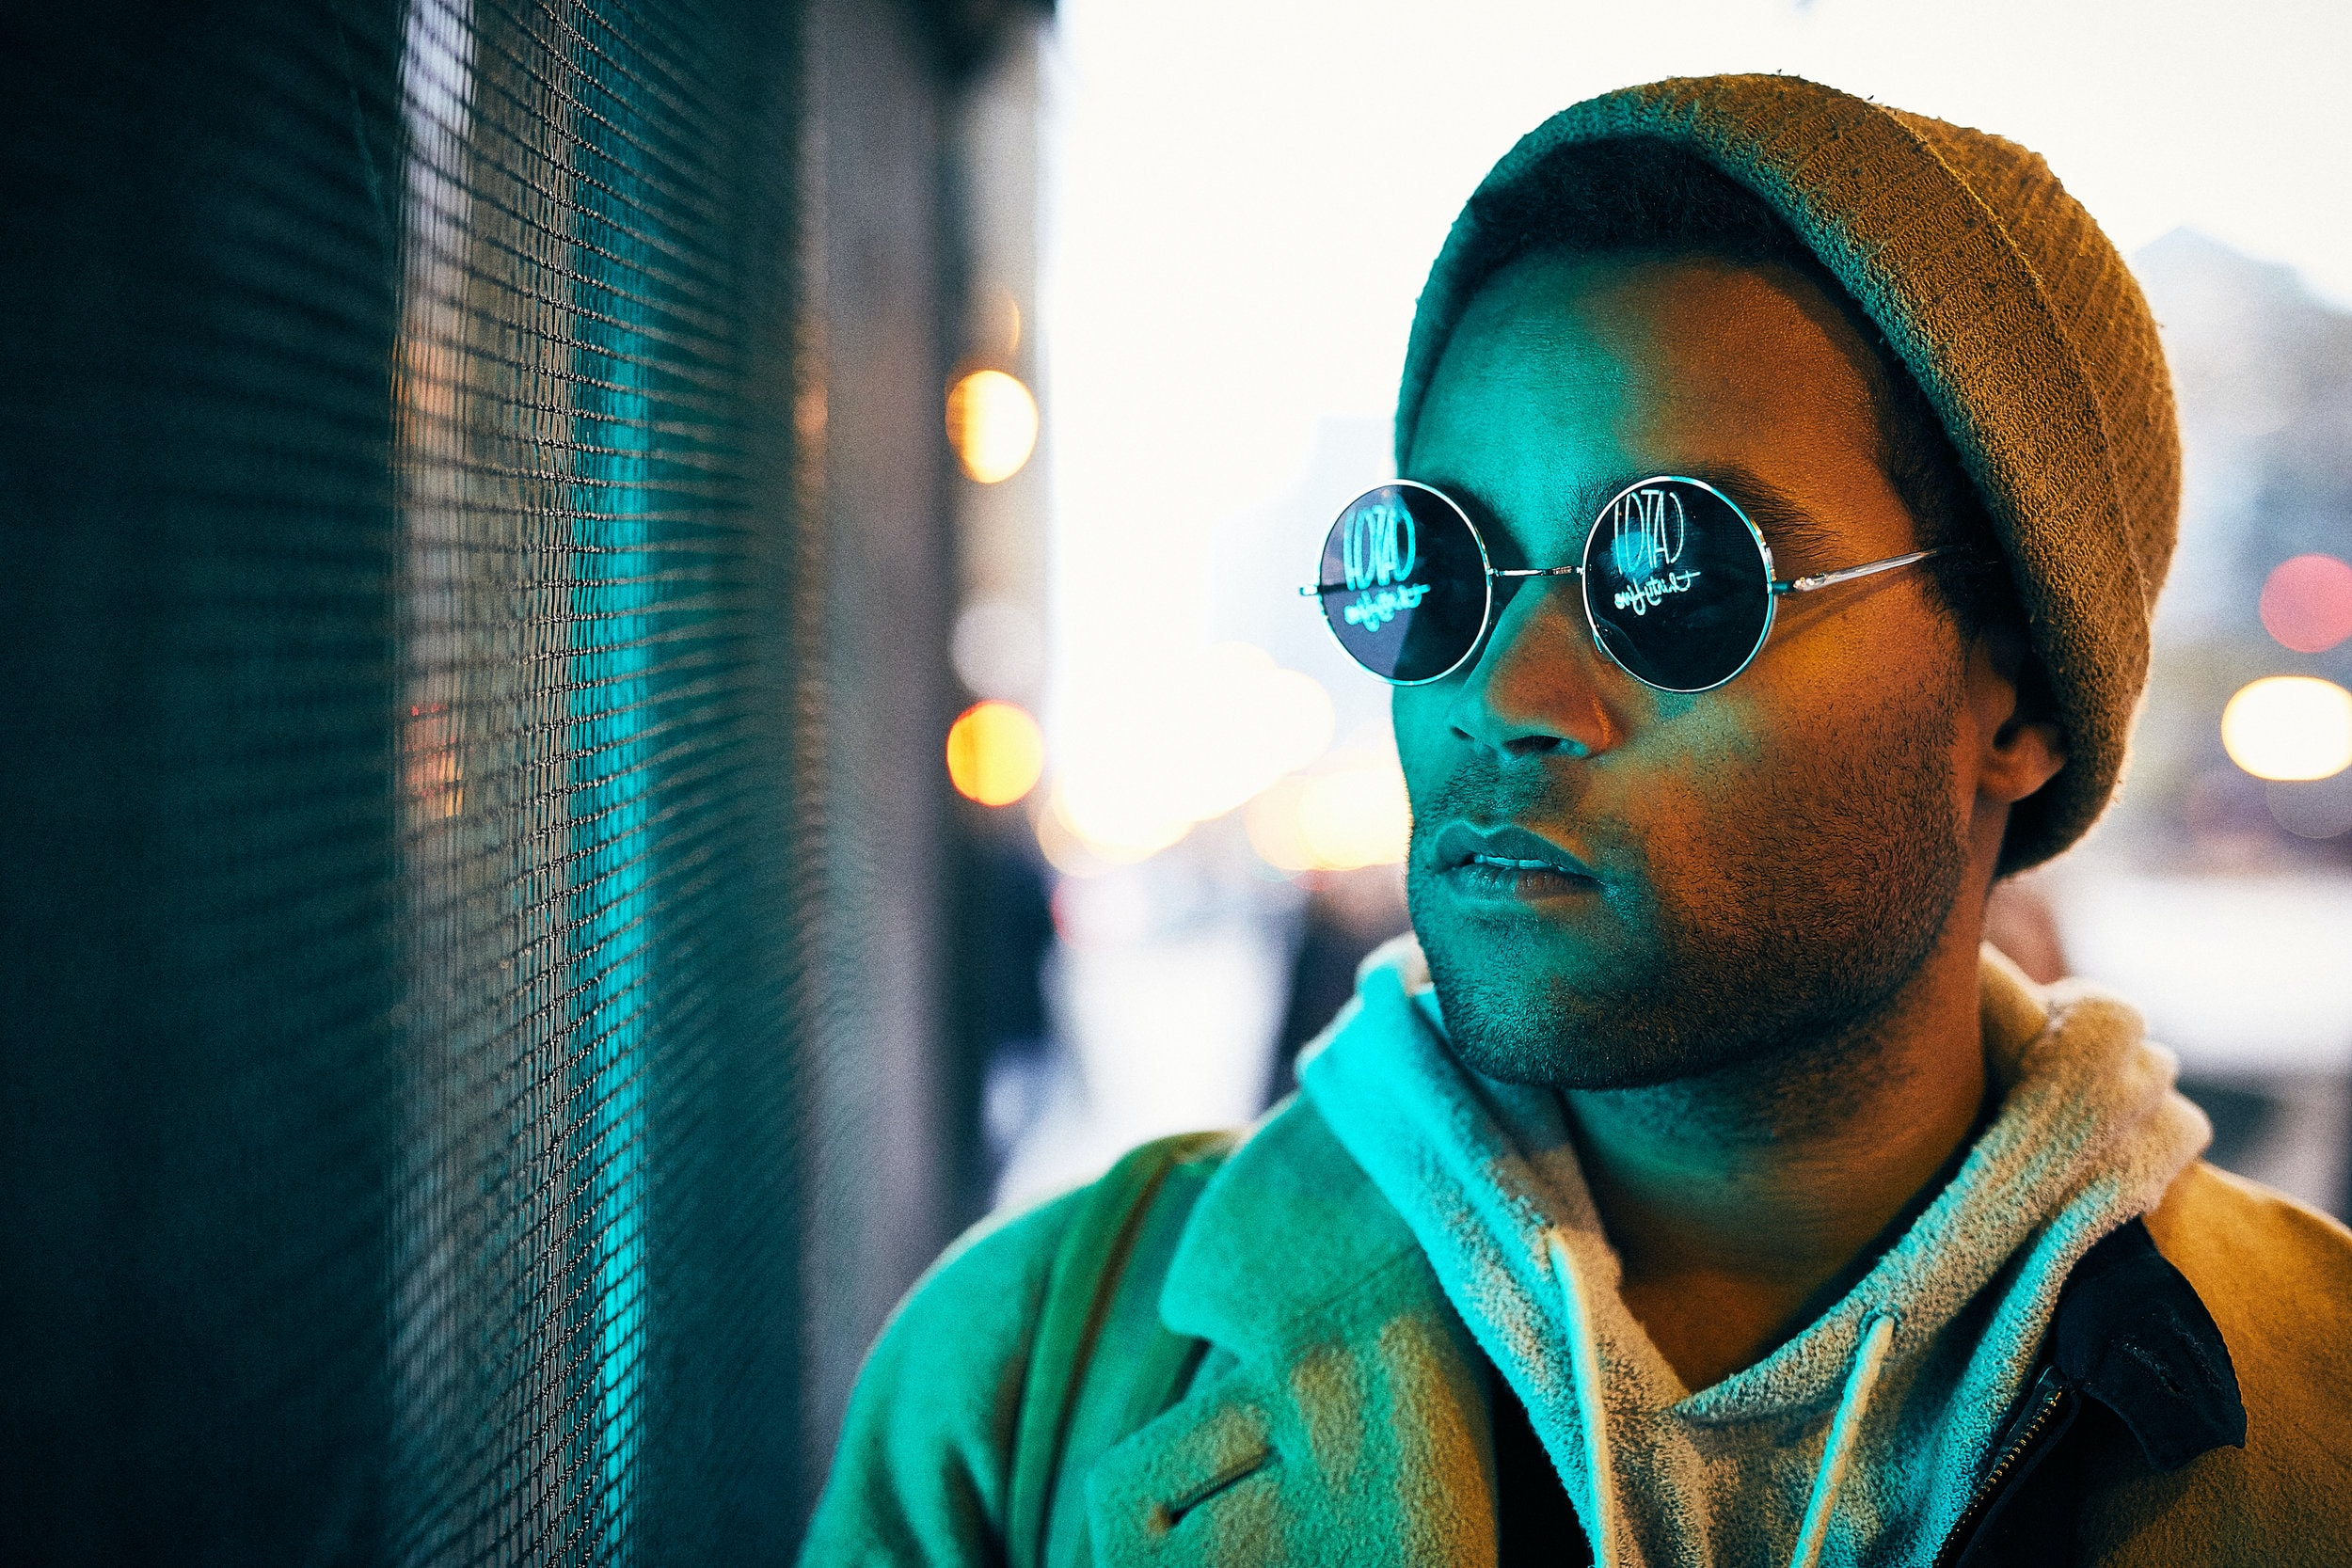 man wearing sunglasses looking at window